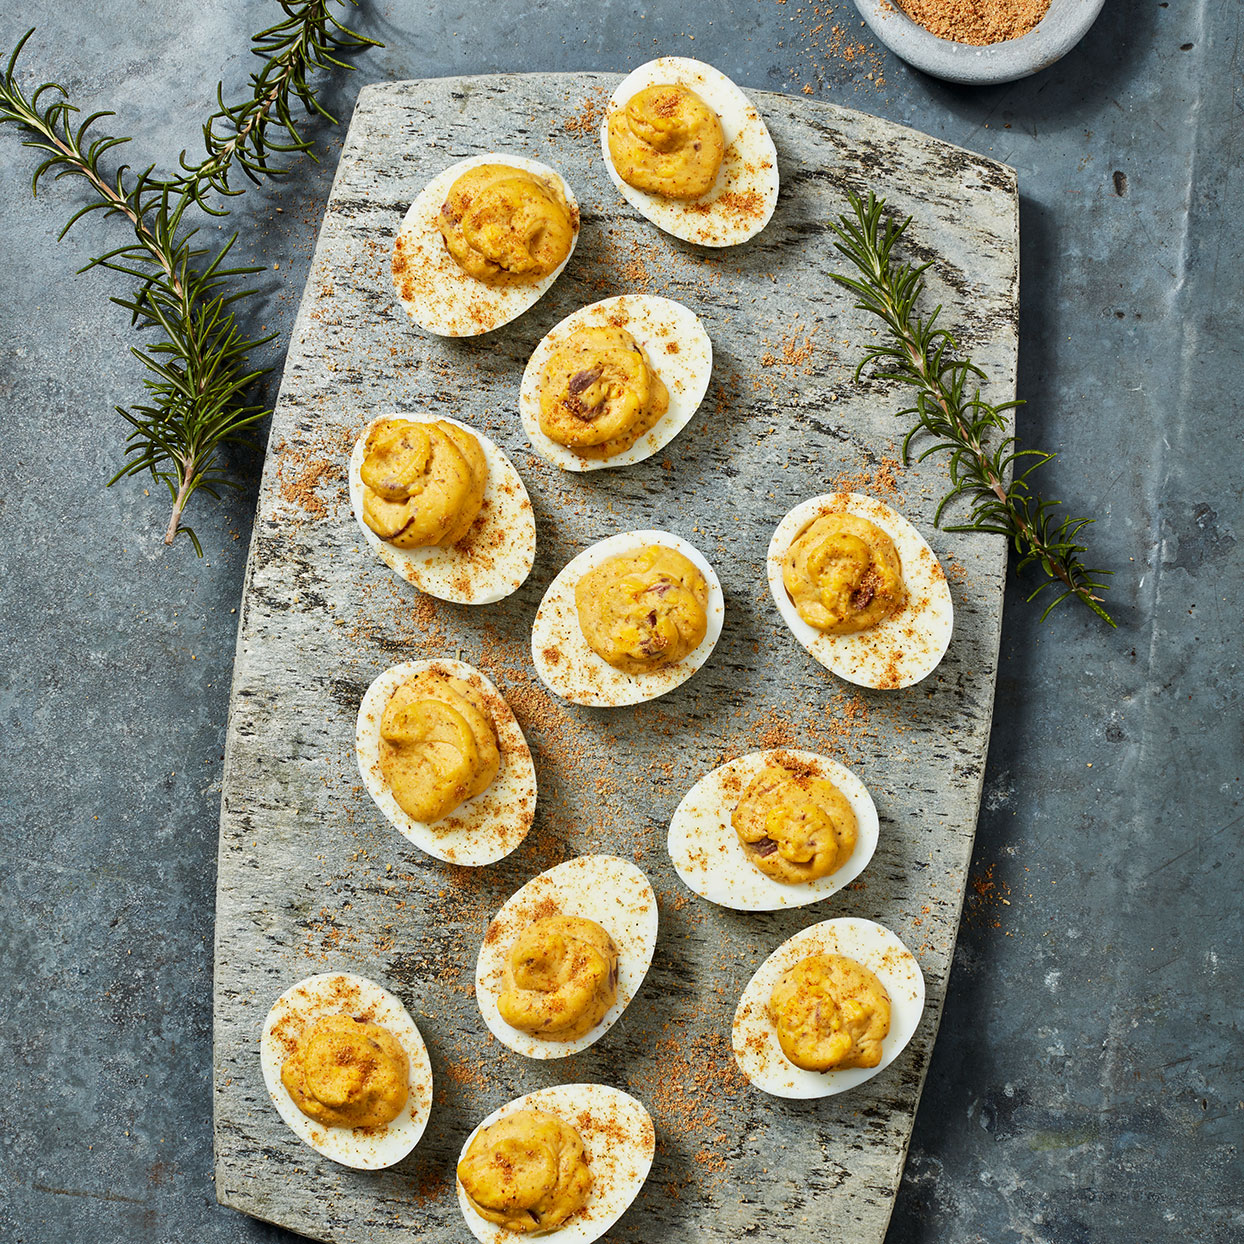 Why do the yolks of deviled eggs get all the love? This healthy deviled eggs recipe reserves some of the seasoning to sprinkle on the usually bland whites as well.